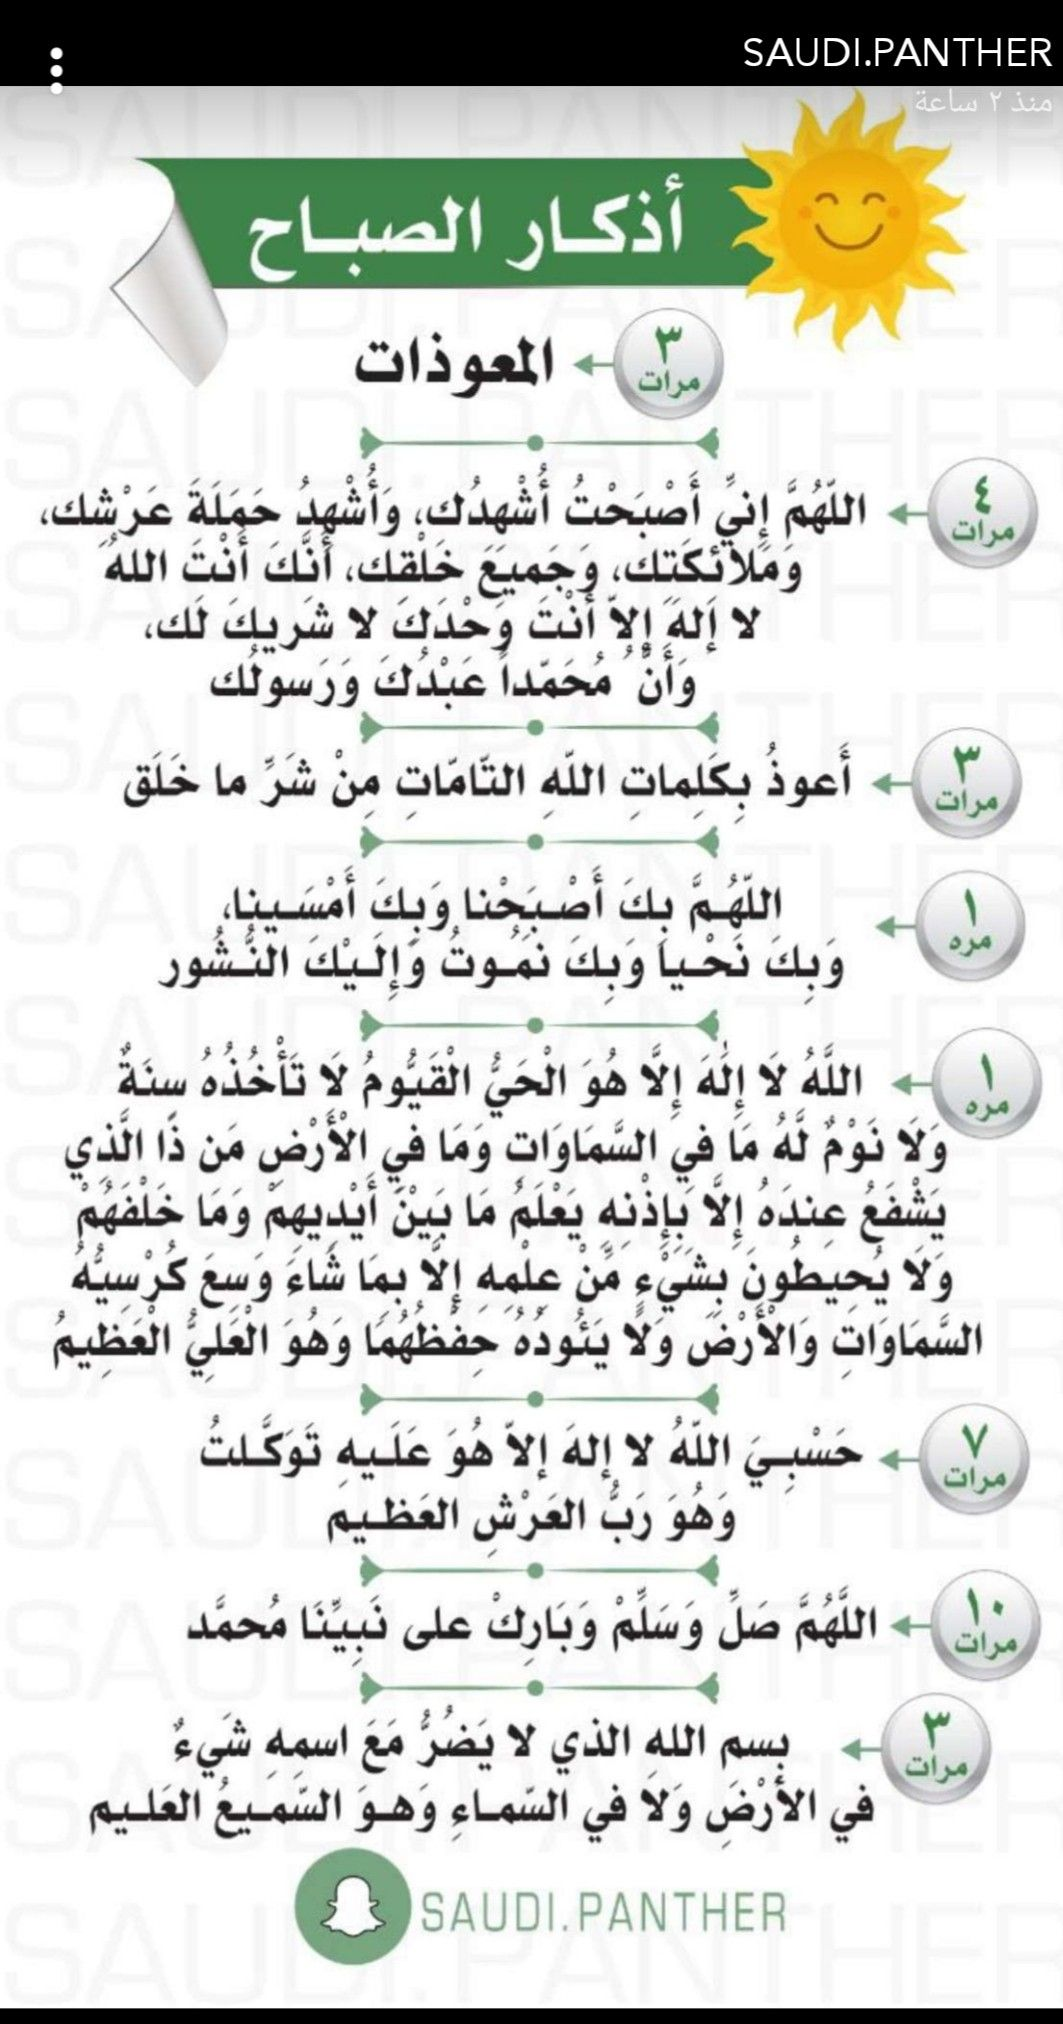 Coran Pour Realiser Tes Besoins Islam Facts Islamic Phrases Islam Beliefs